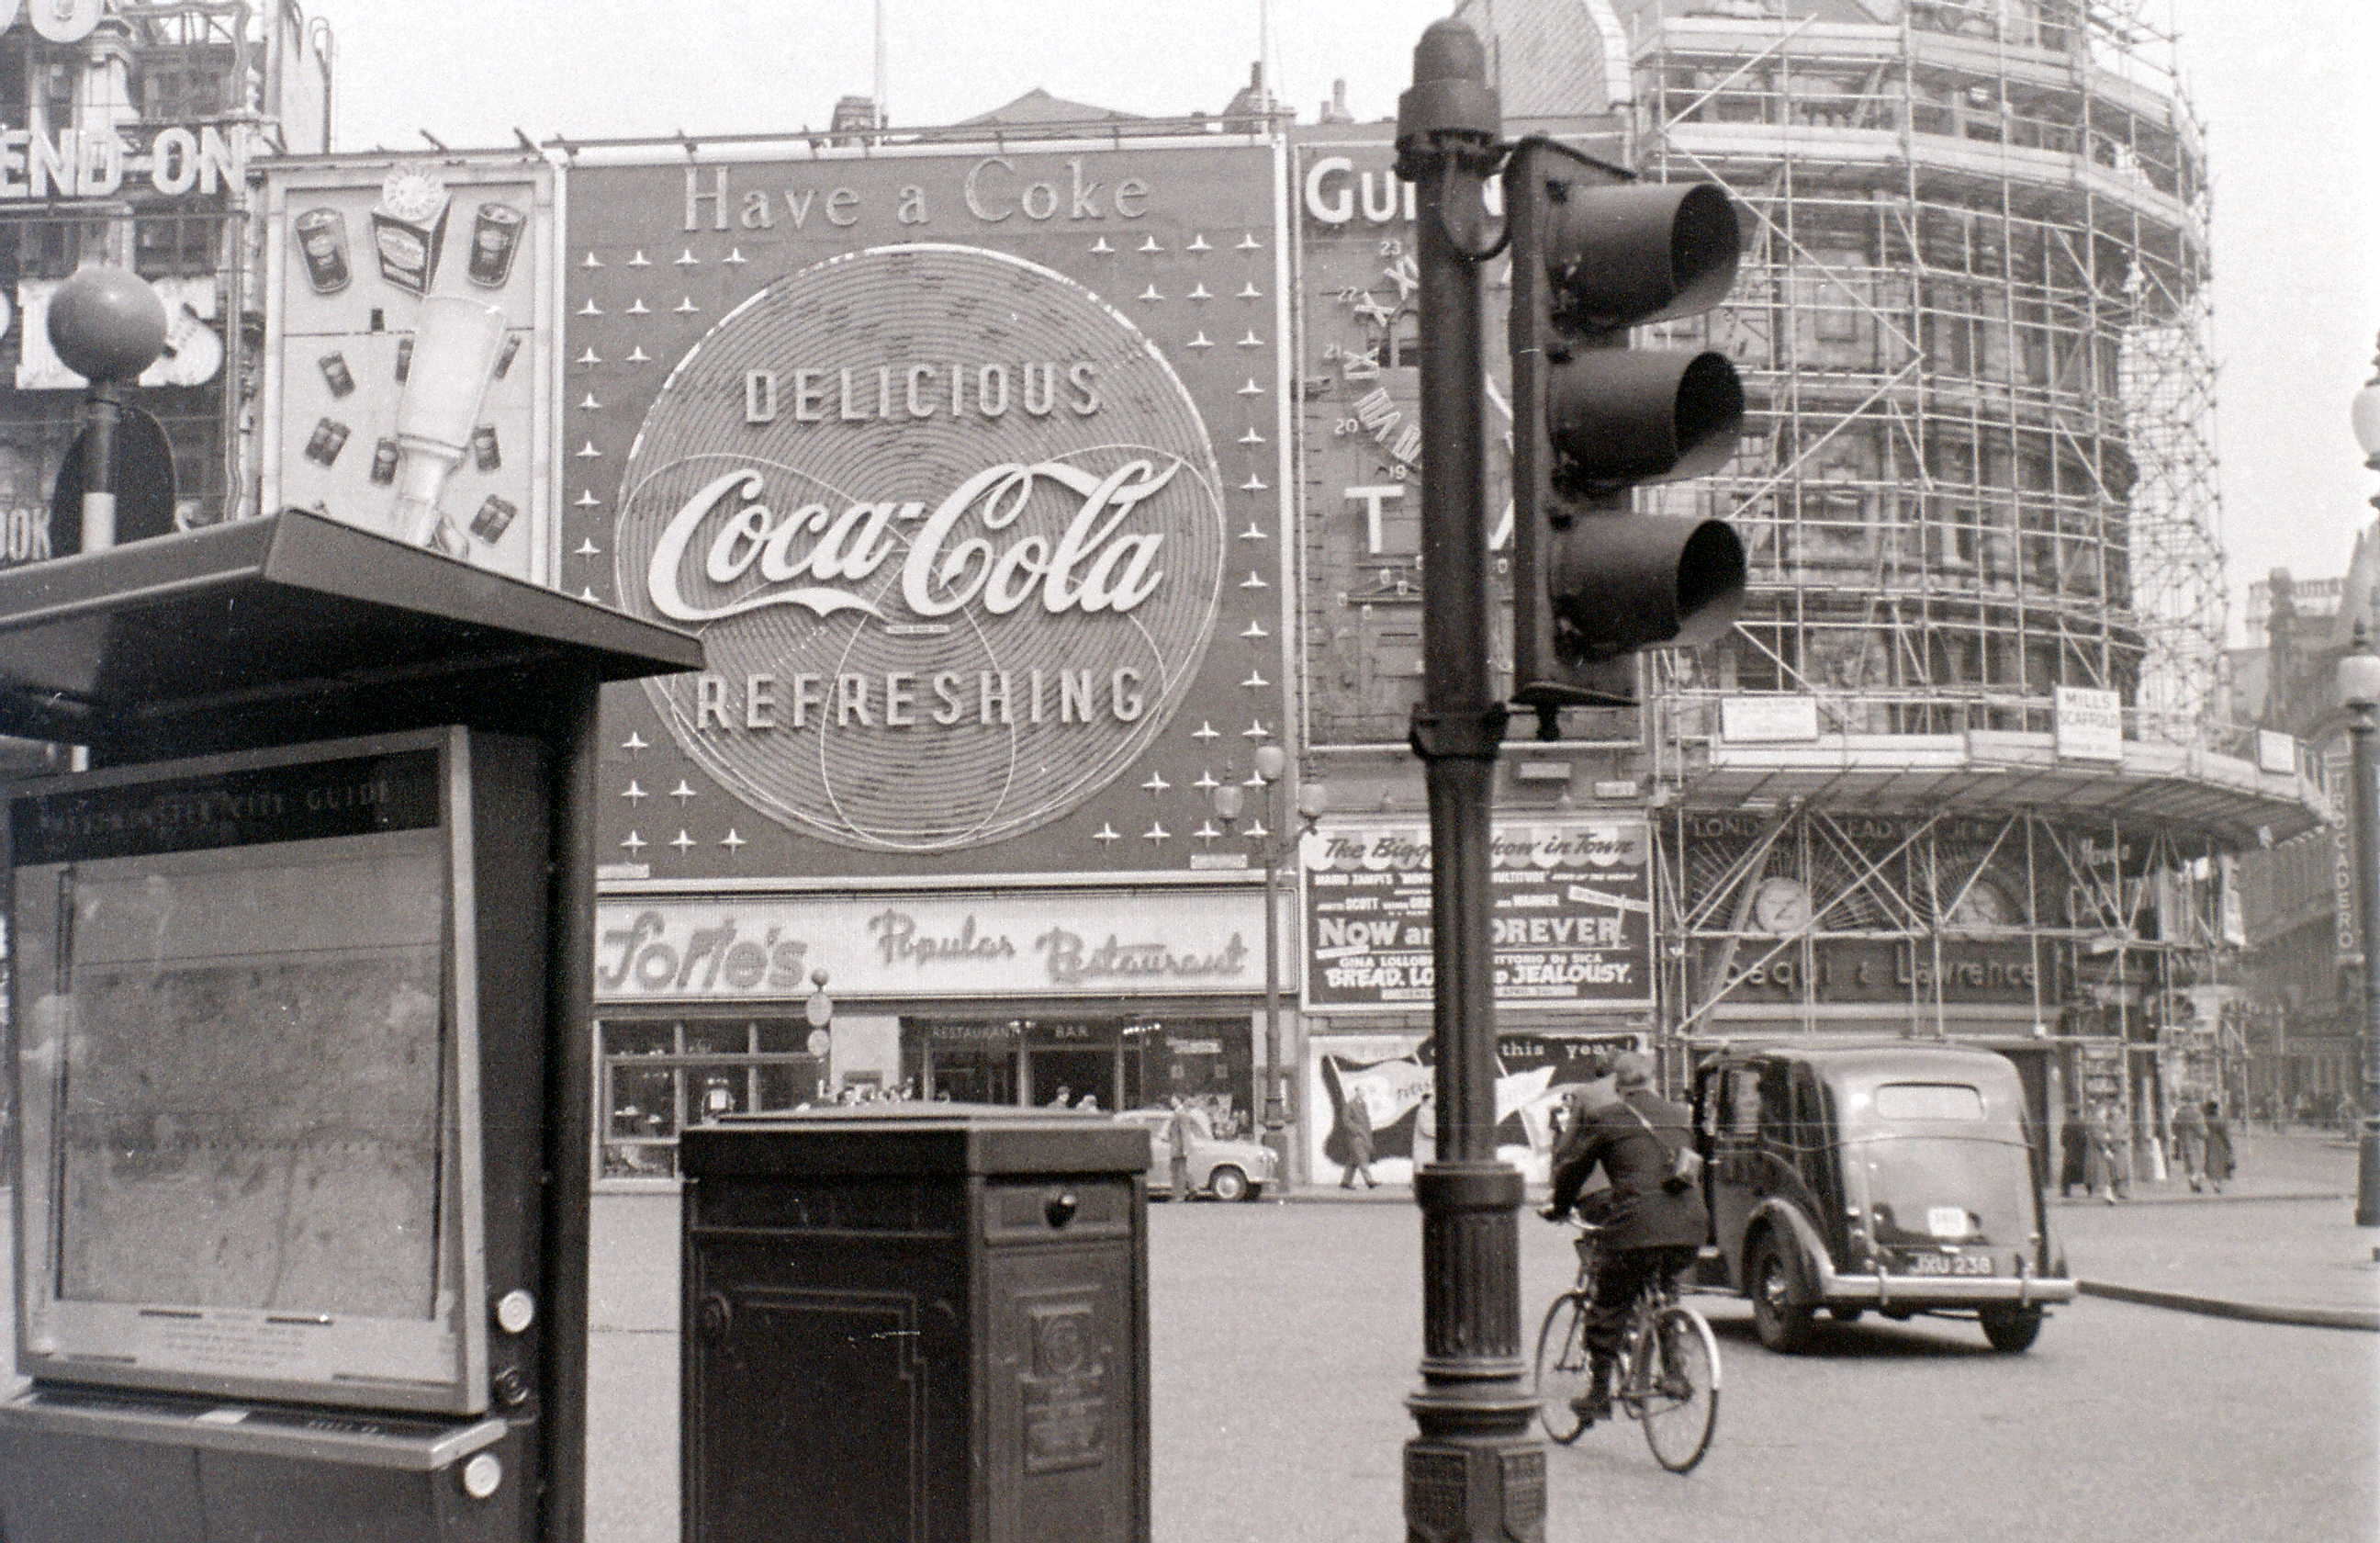 Piccadilly Circus, London, 2 April 1956.